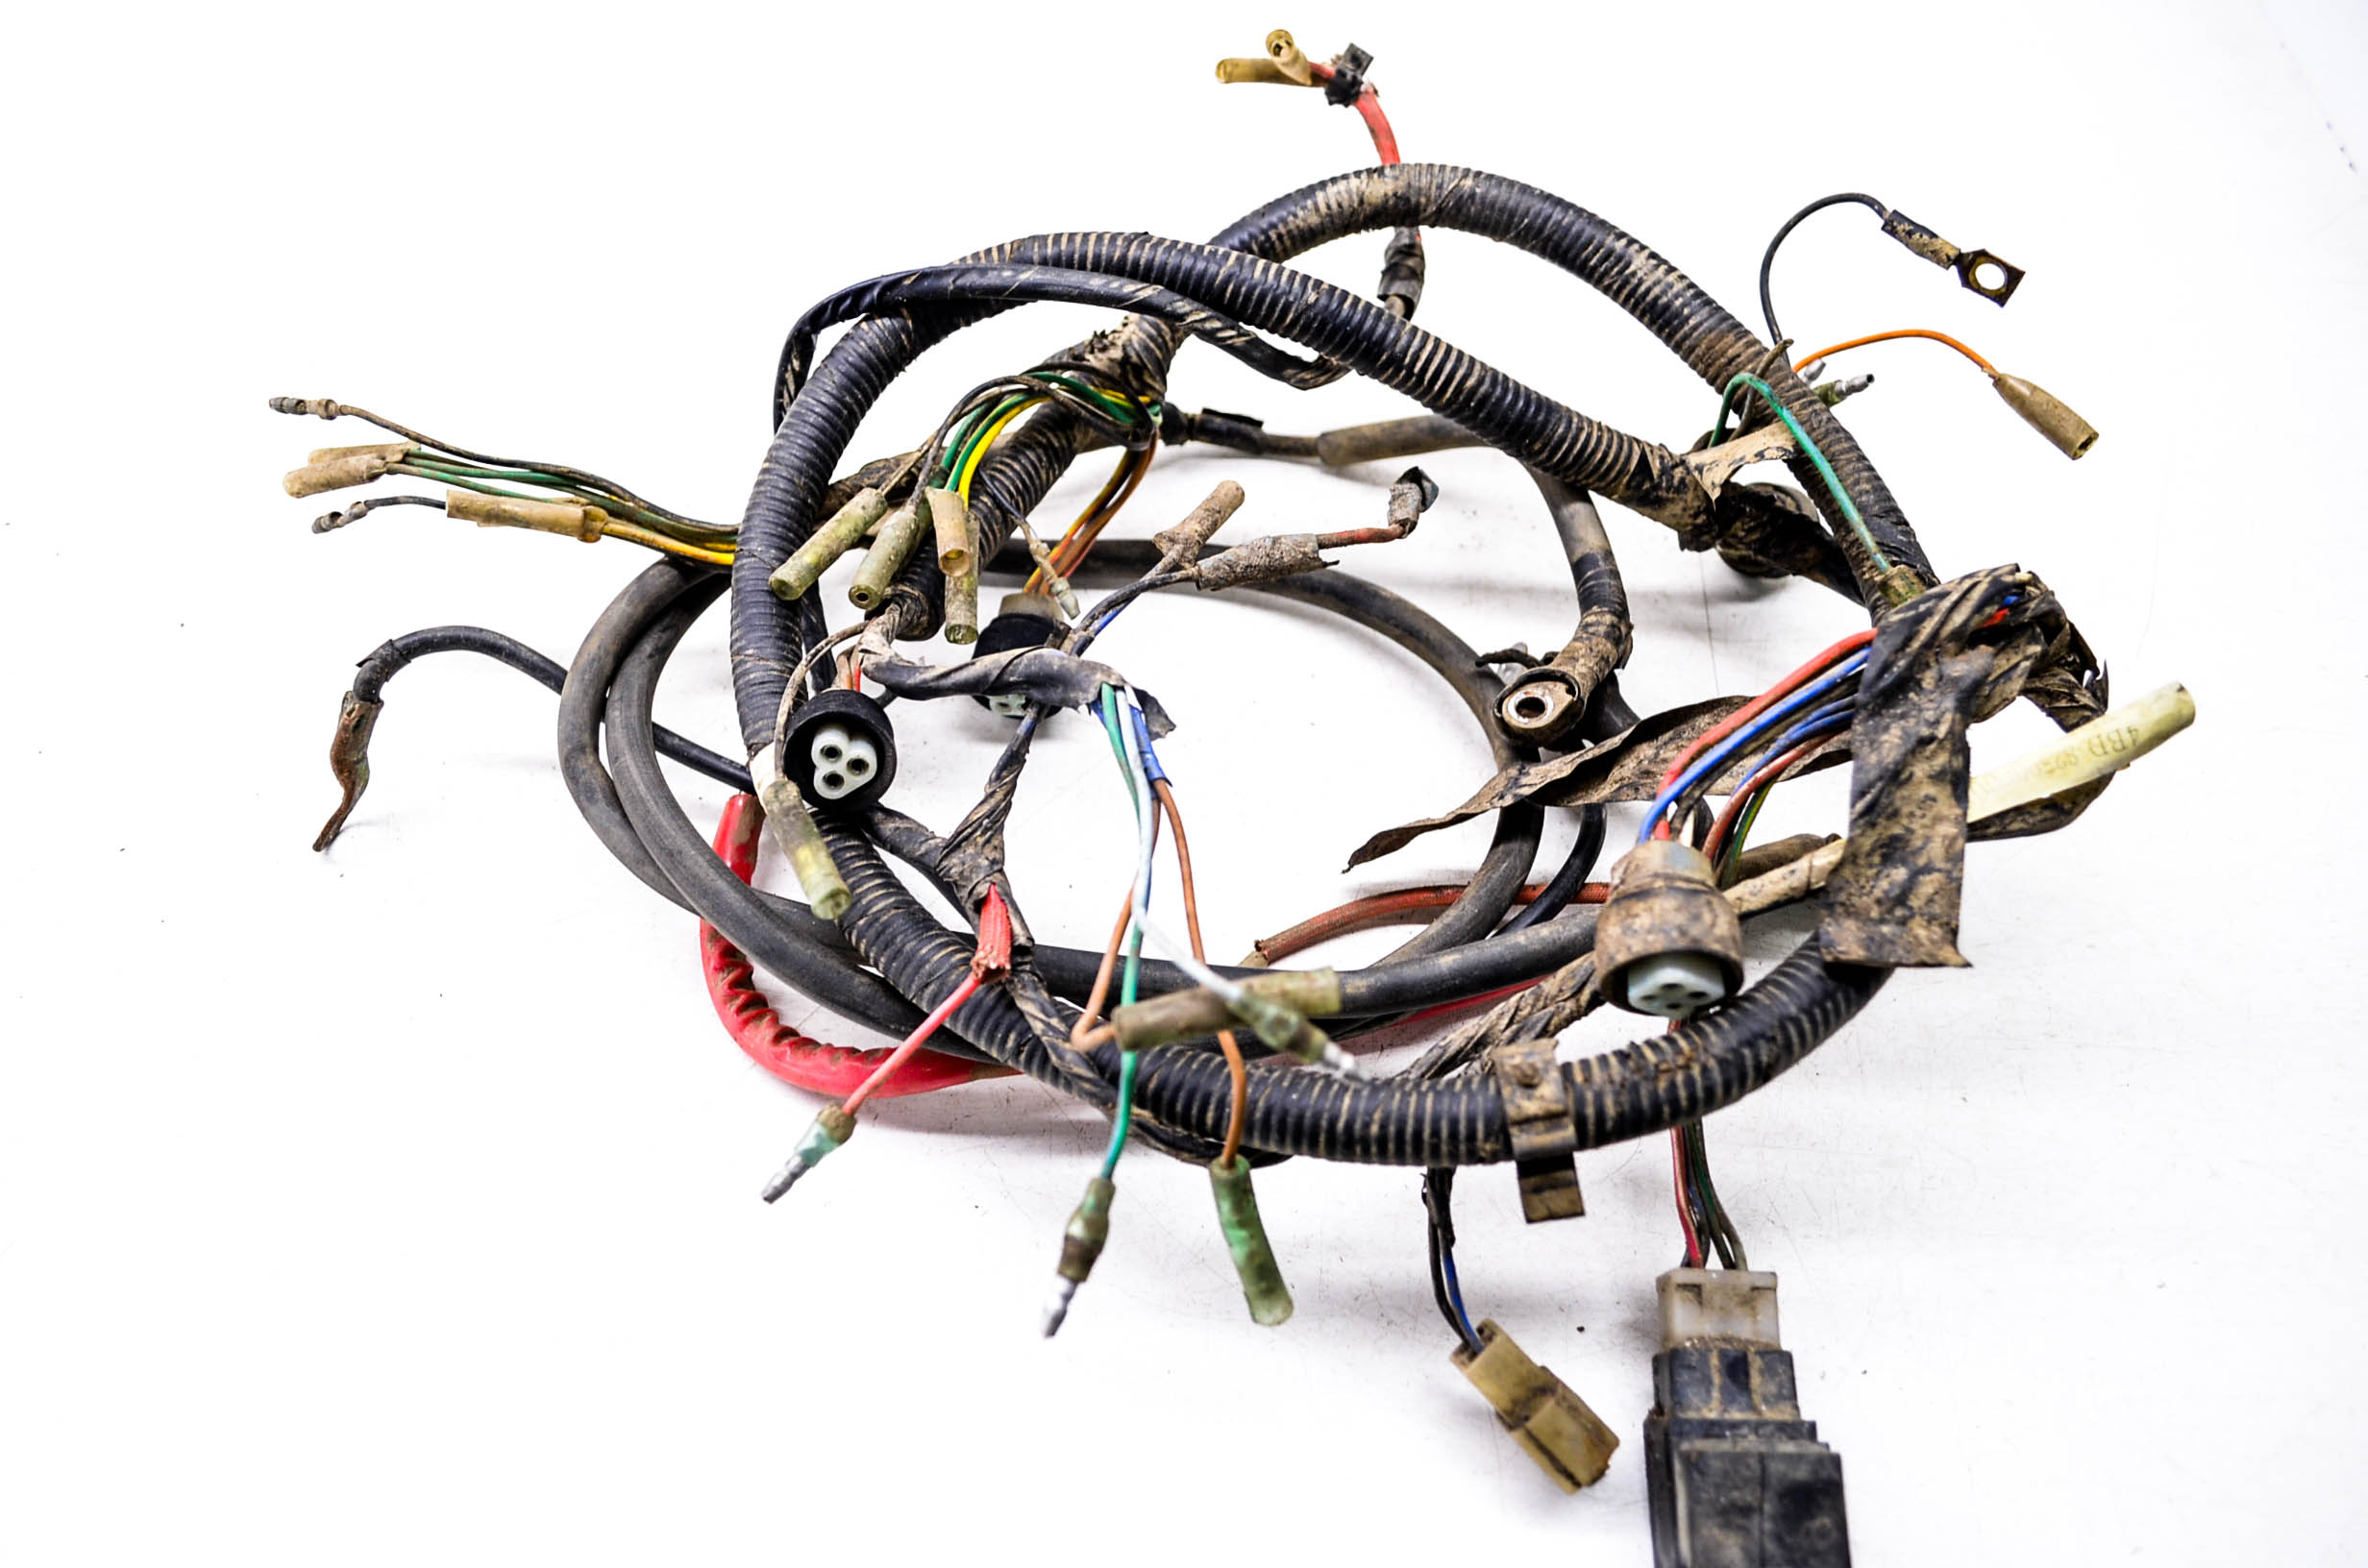 Yamaha Timberwolf Wiring Harness On Diagram Verado 92 250 2x4 Wire Electrical Yfb250 Boat